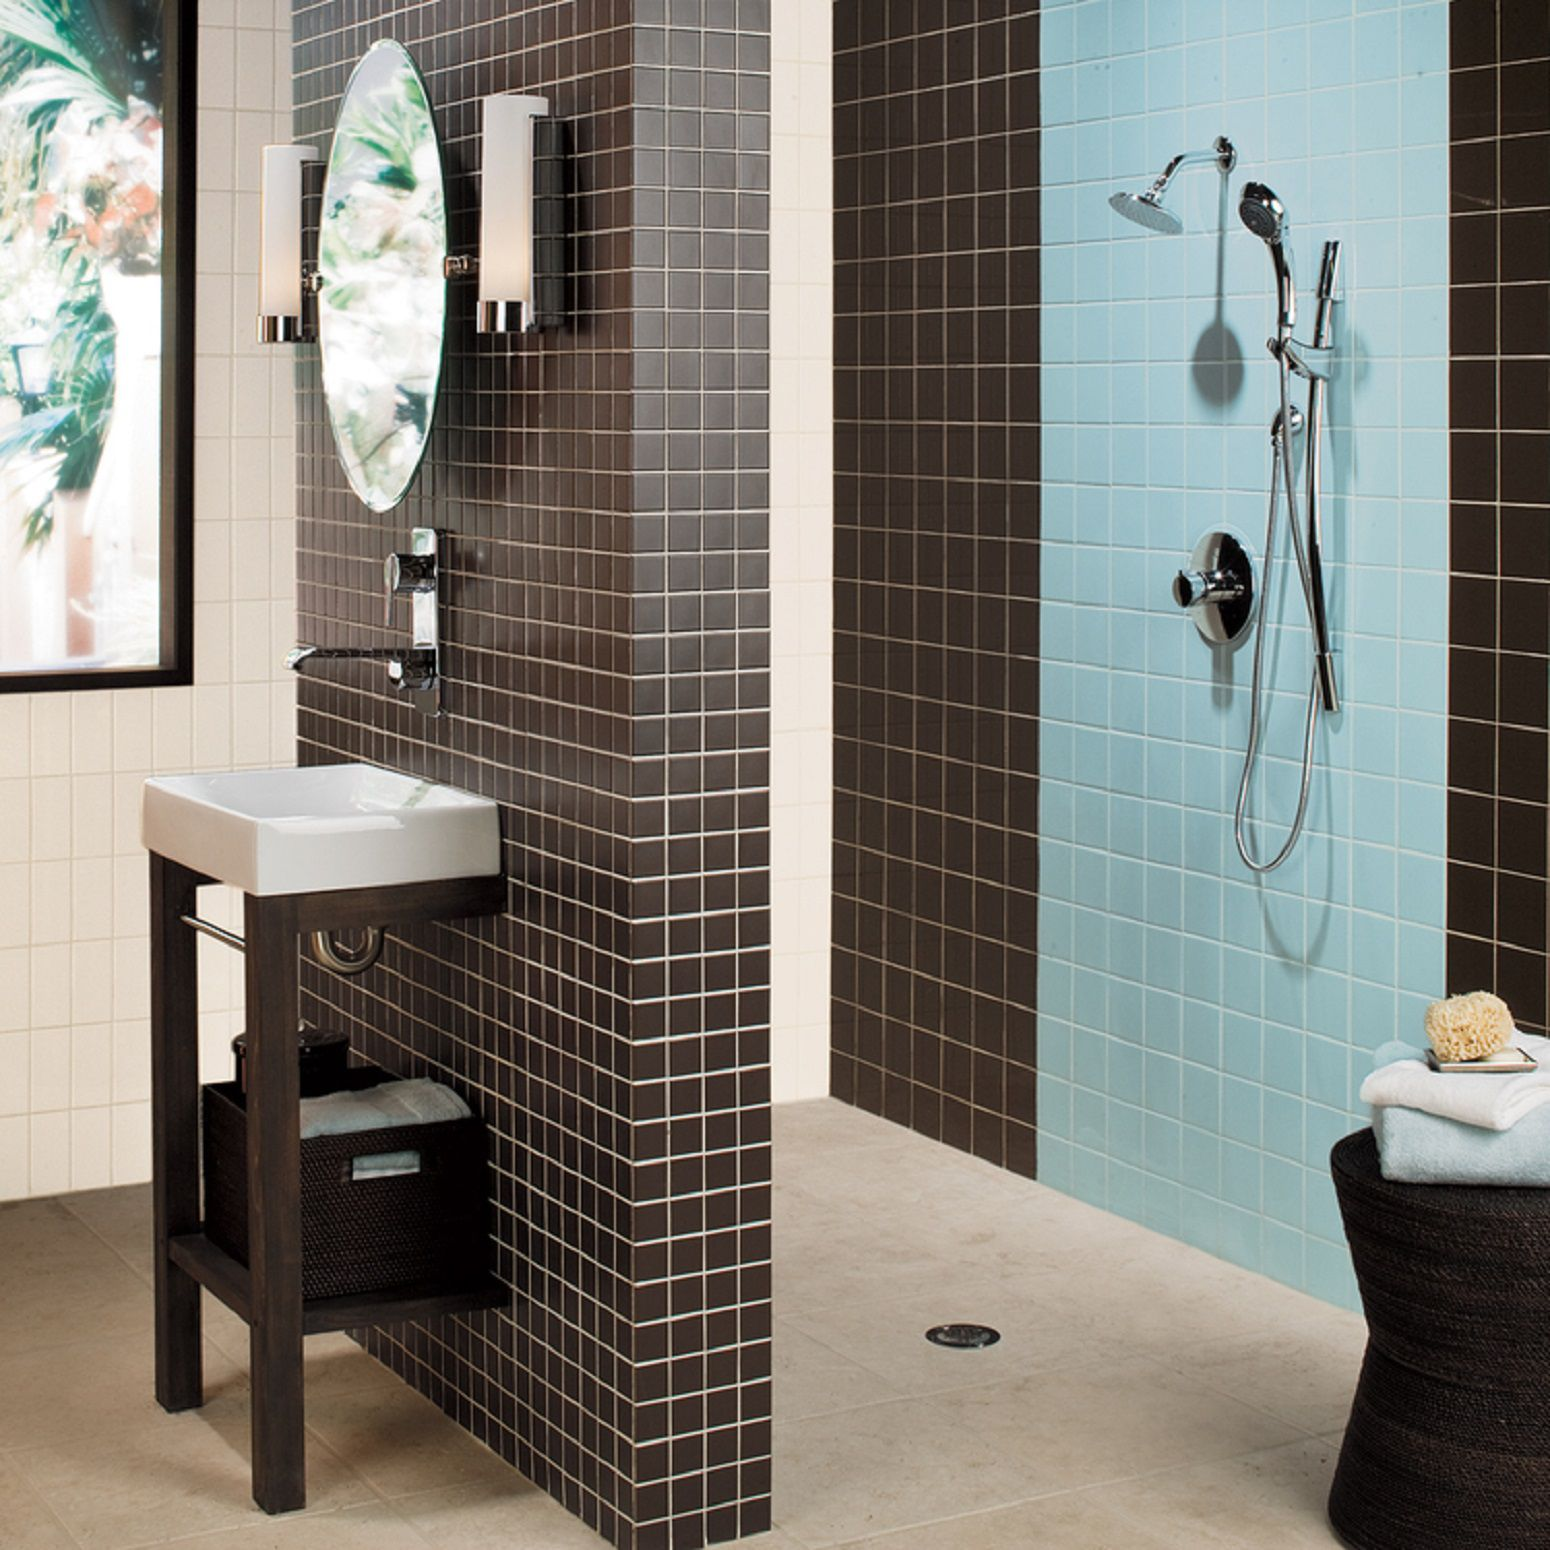 30 bathroom tile ideas for a fresh new look - Bathroom Tile Ideas Bathroom